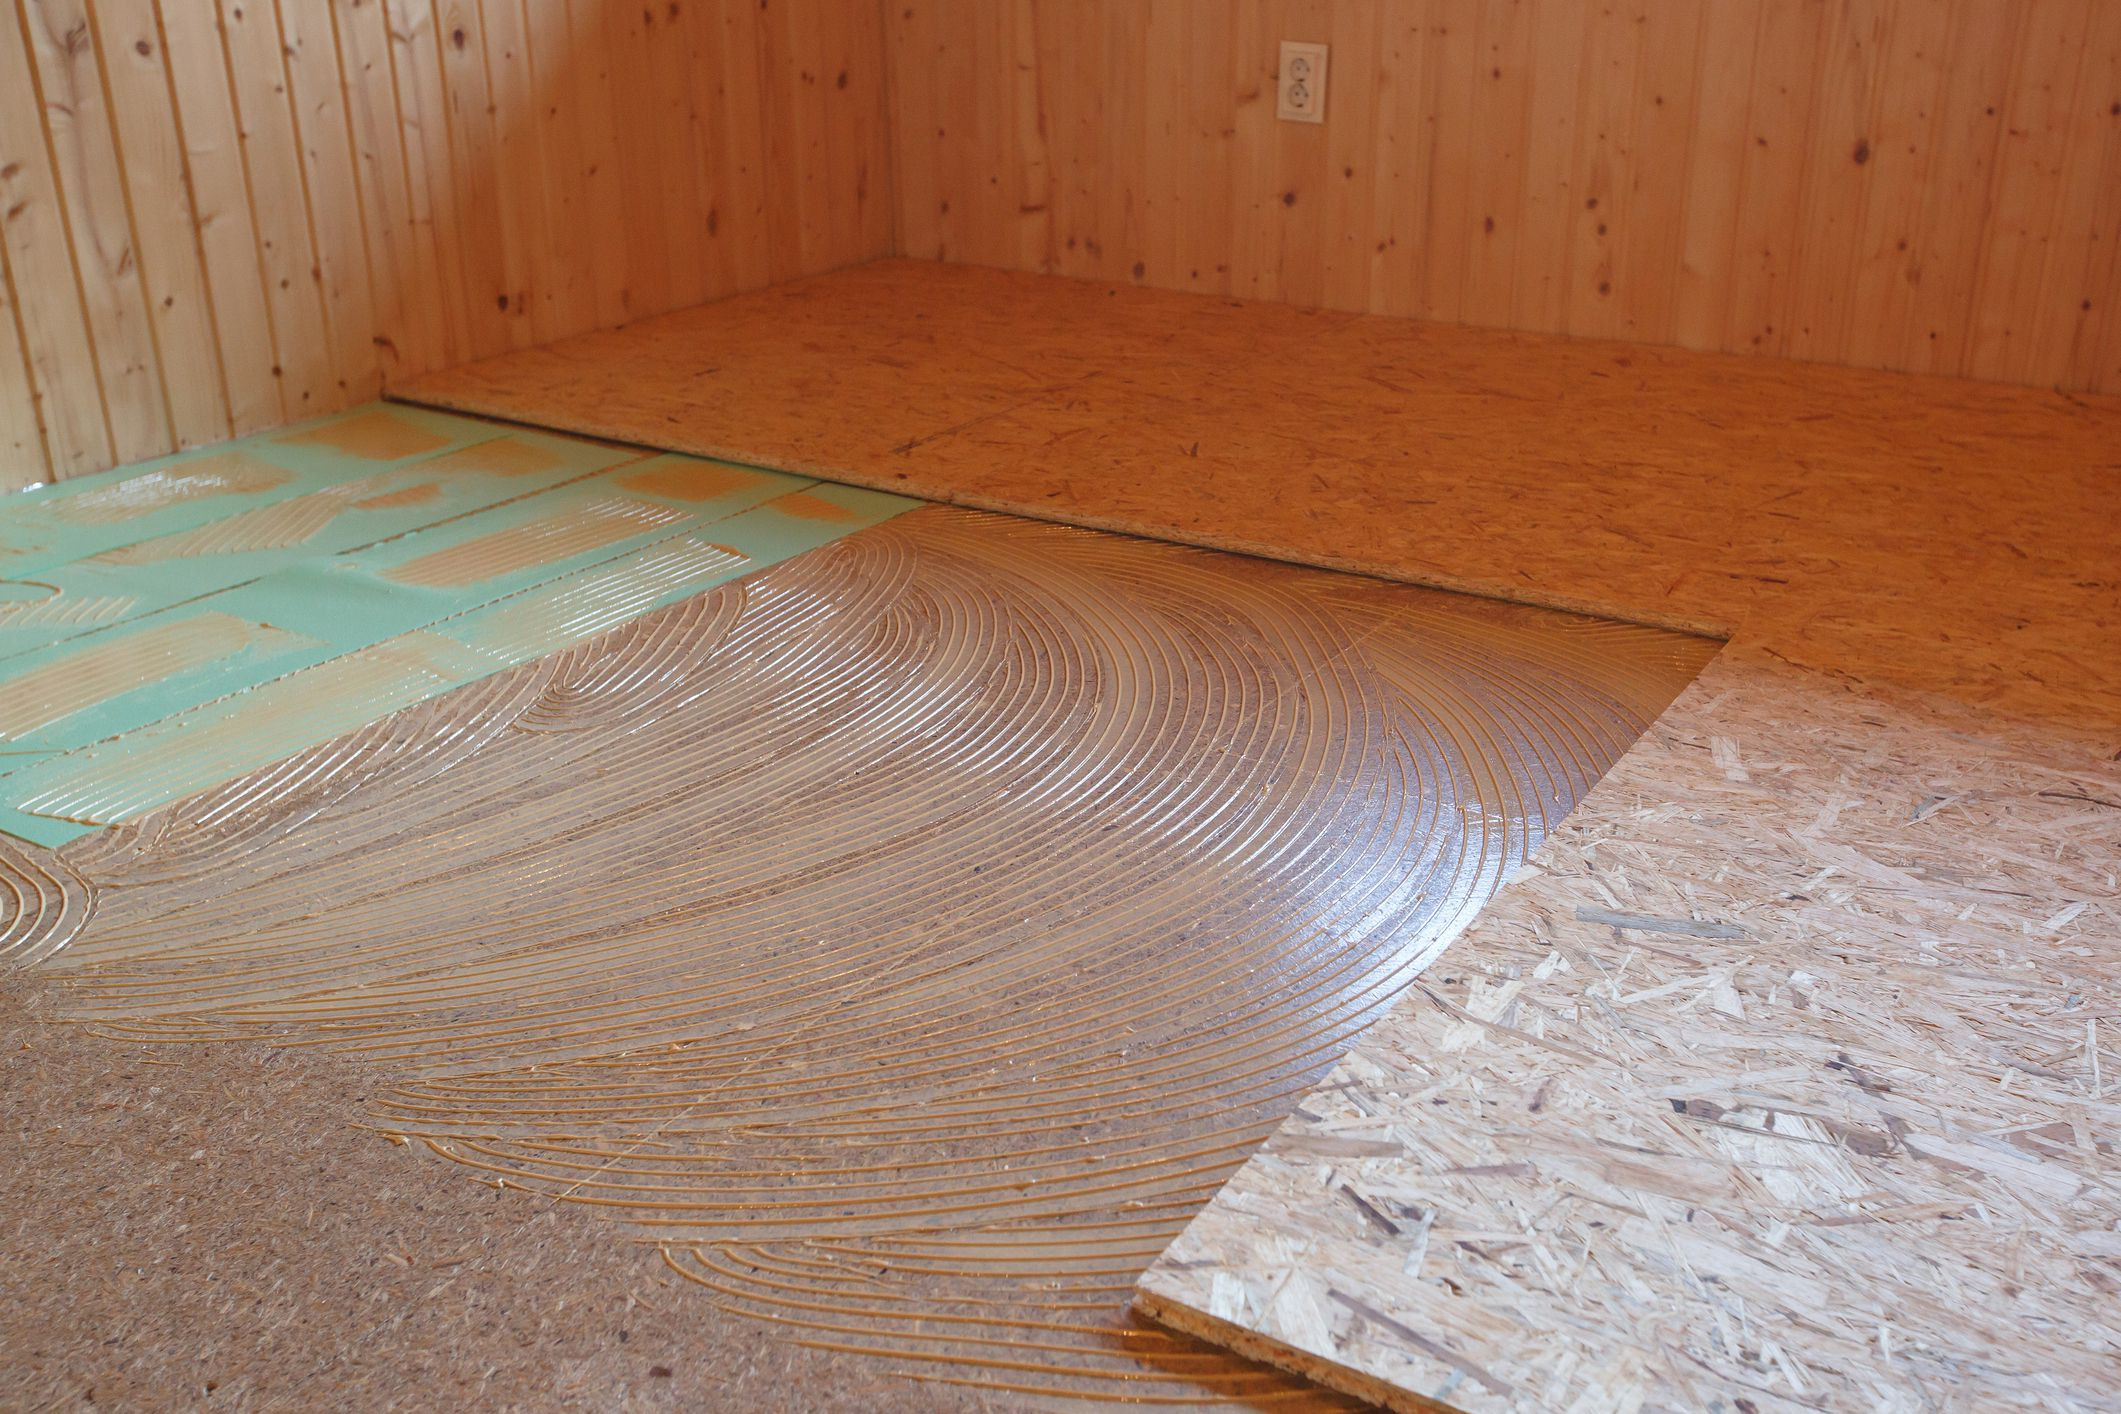 floor padding for hardwood floor of types of subfloor materials in construction projects with regard to gettyimages 892047030 5af5f46fc064710036eebd22